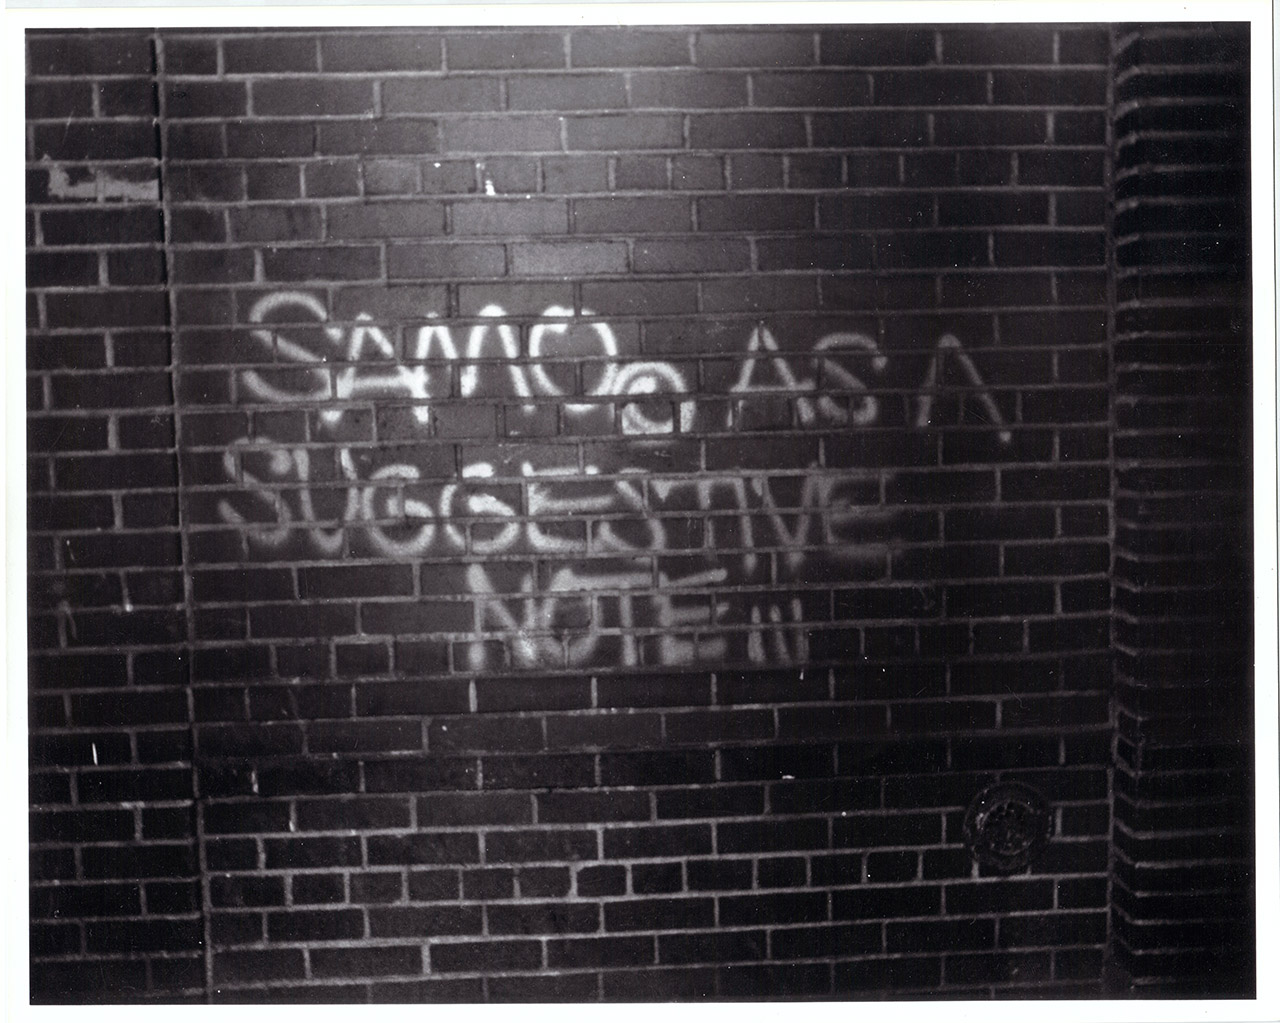 A SAMO tag in 'Boom for Real.'